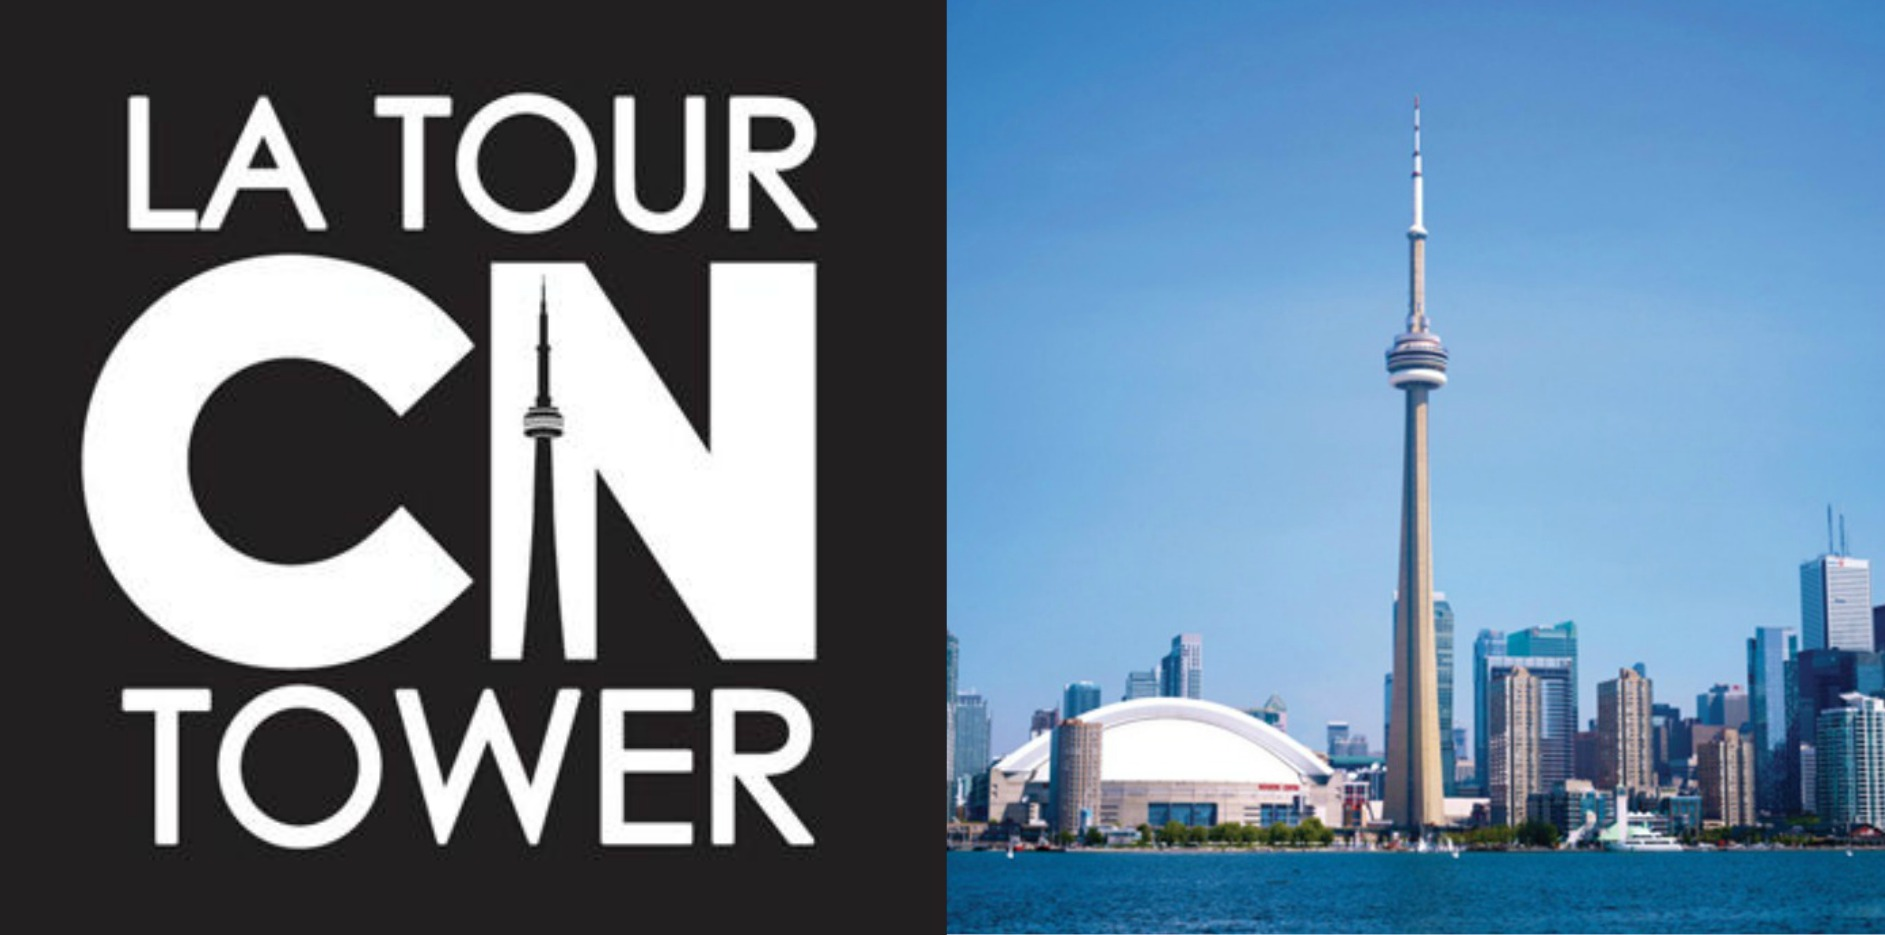 Logo of the CN Tower in Toronto